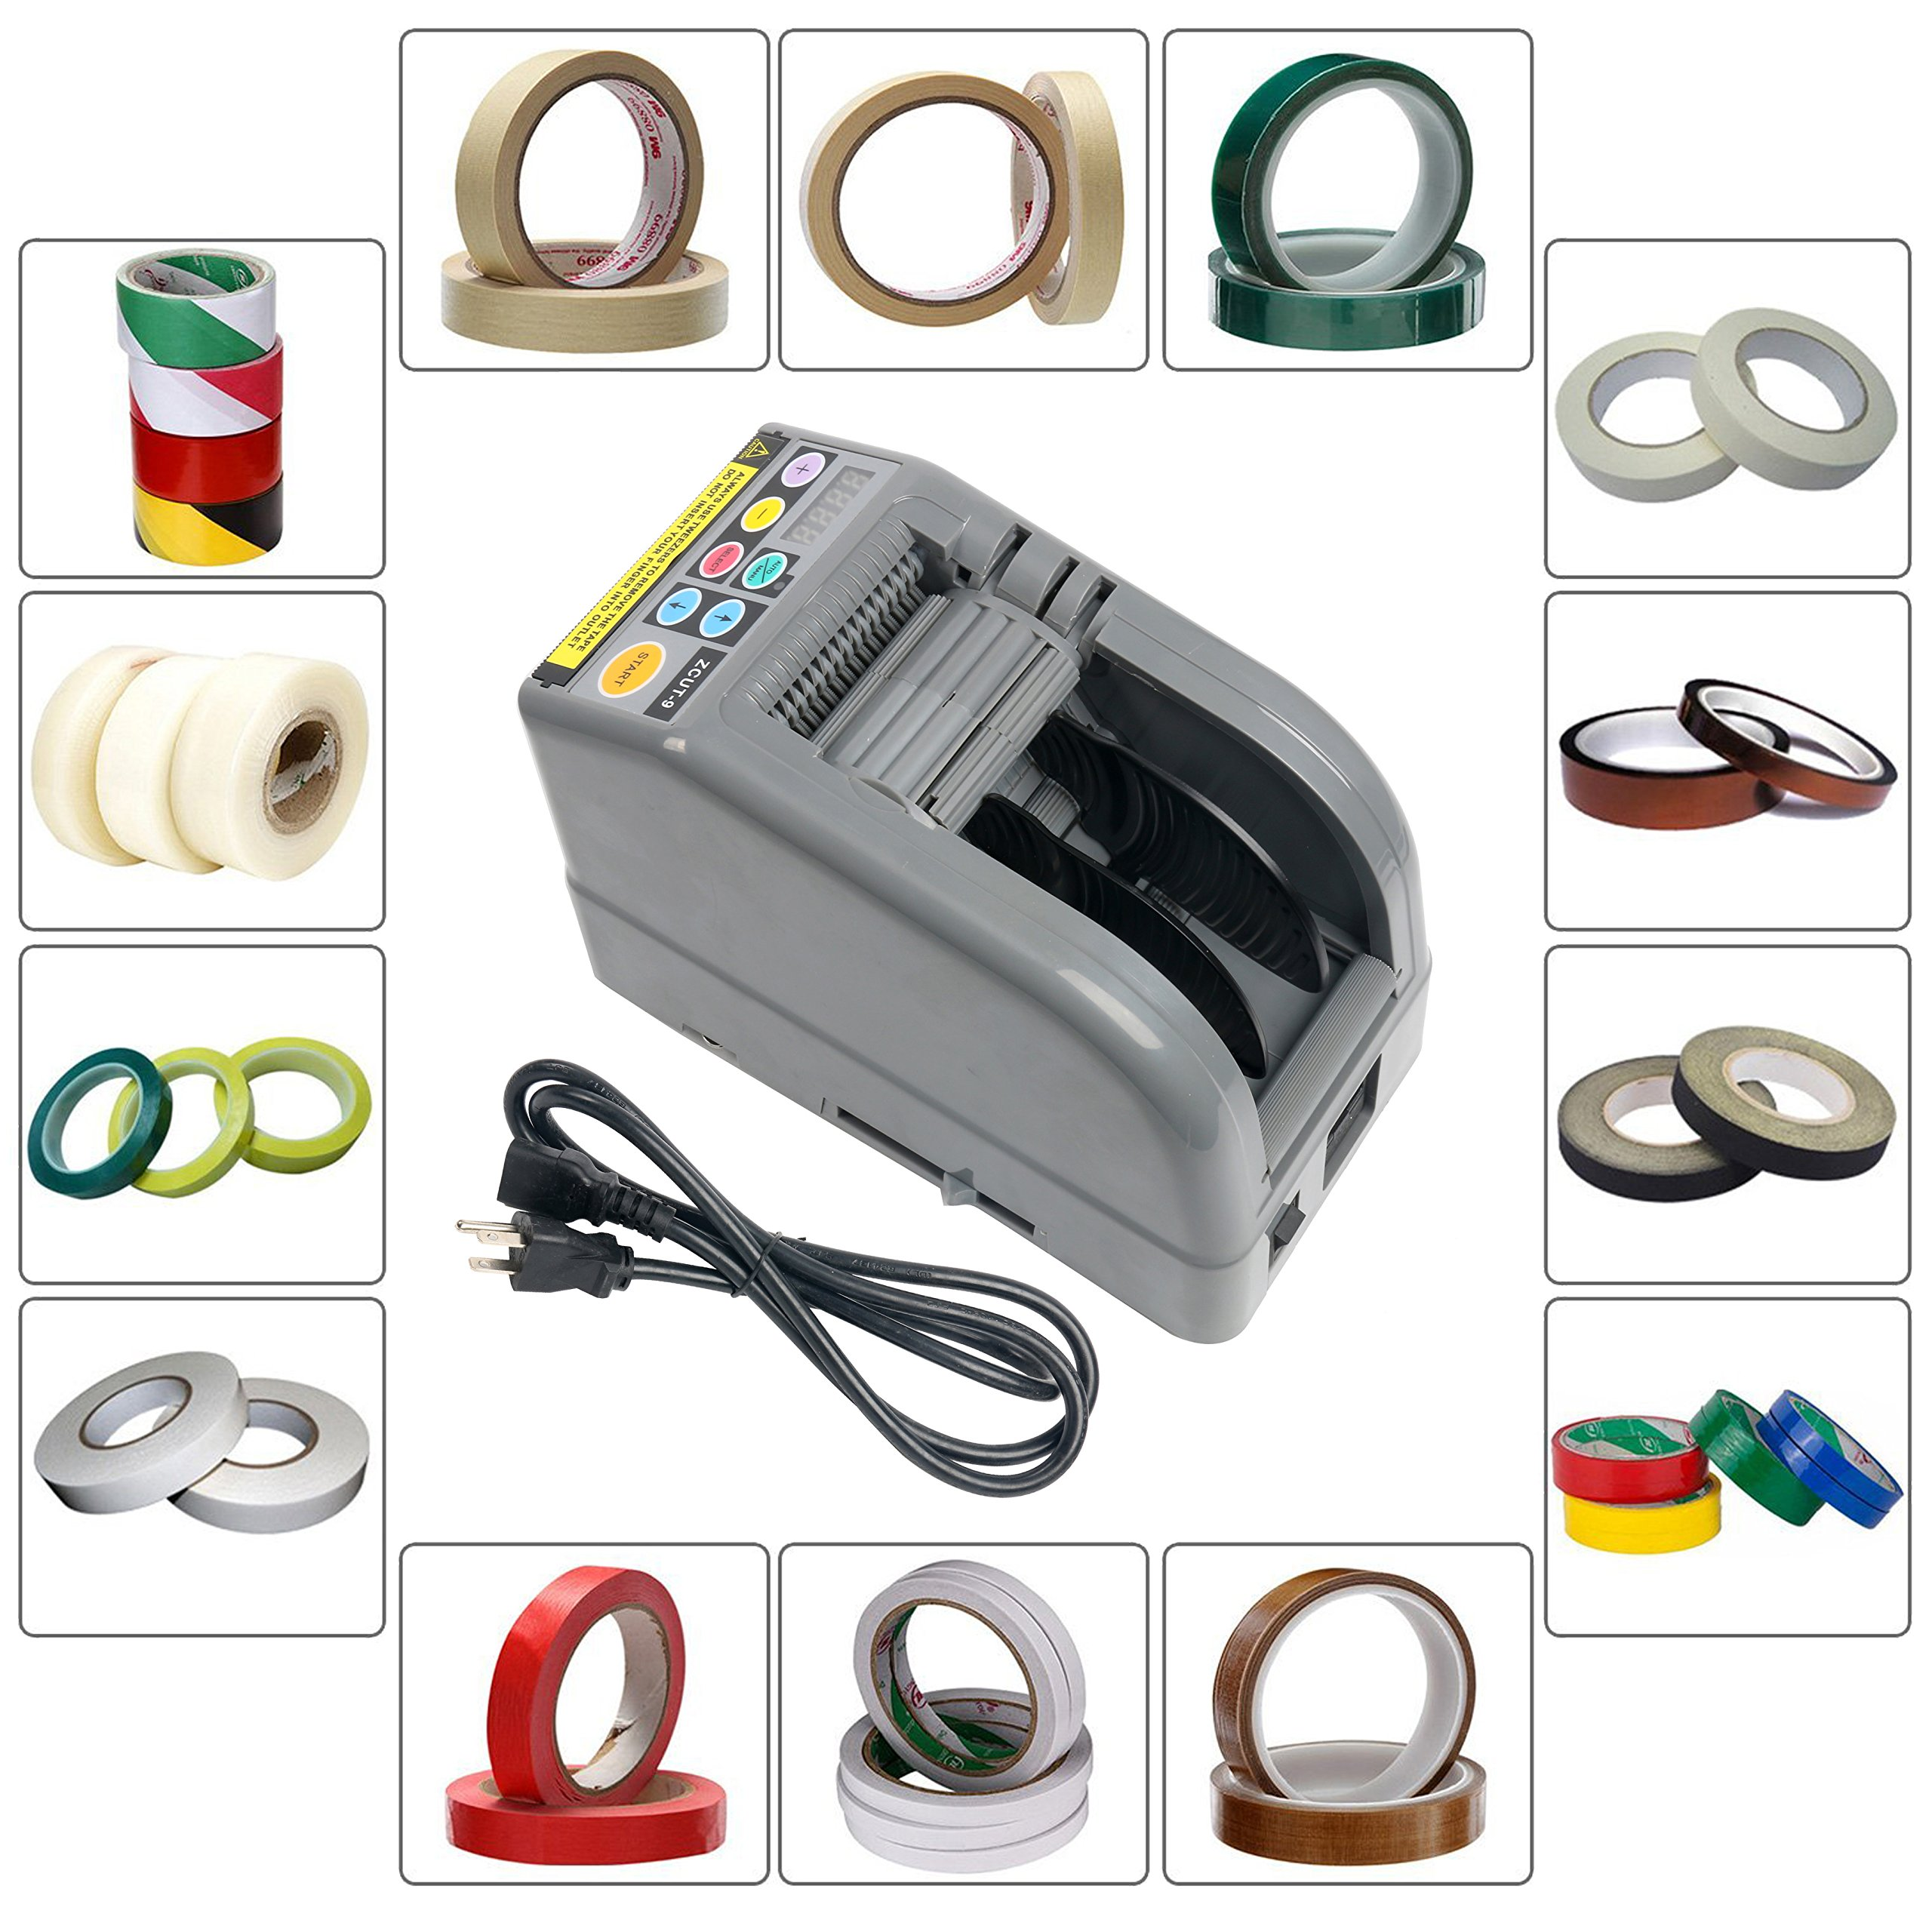 YaeTek ZCUT-9 Electric Auto Definite Length Tape Dispenser Up To 39 Inch length Tape and Suit for Many Kinds Tape Cutting